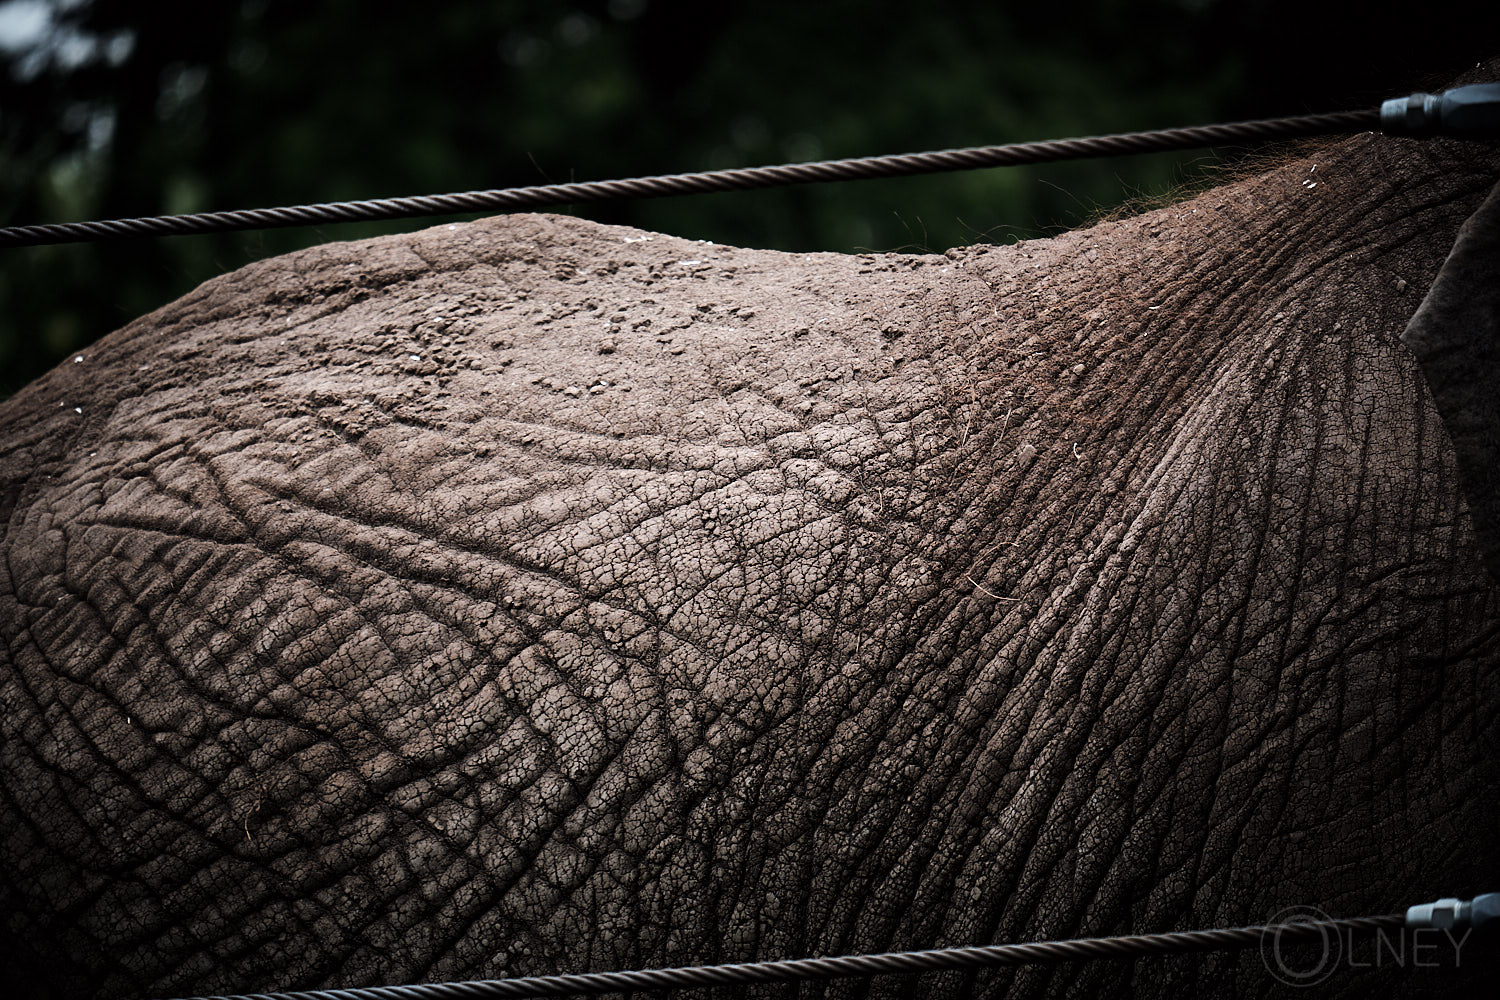 elephant back at granby zoo